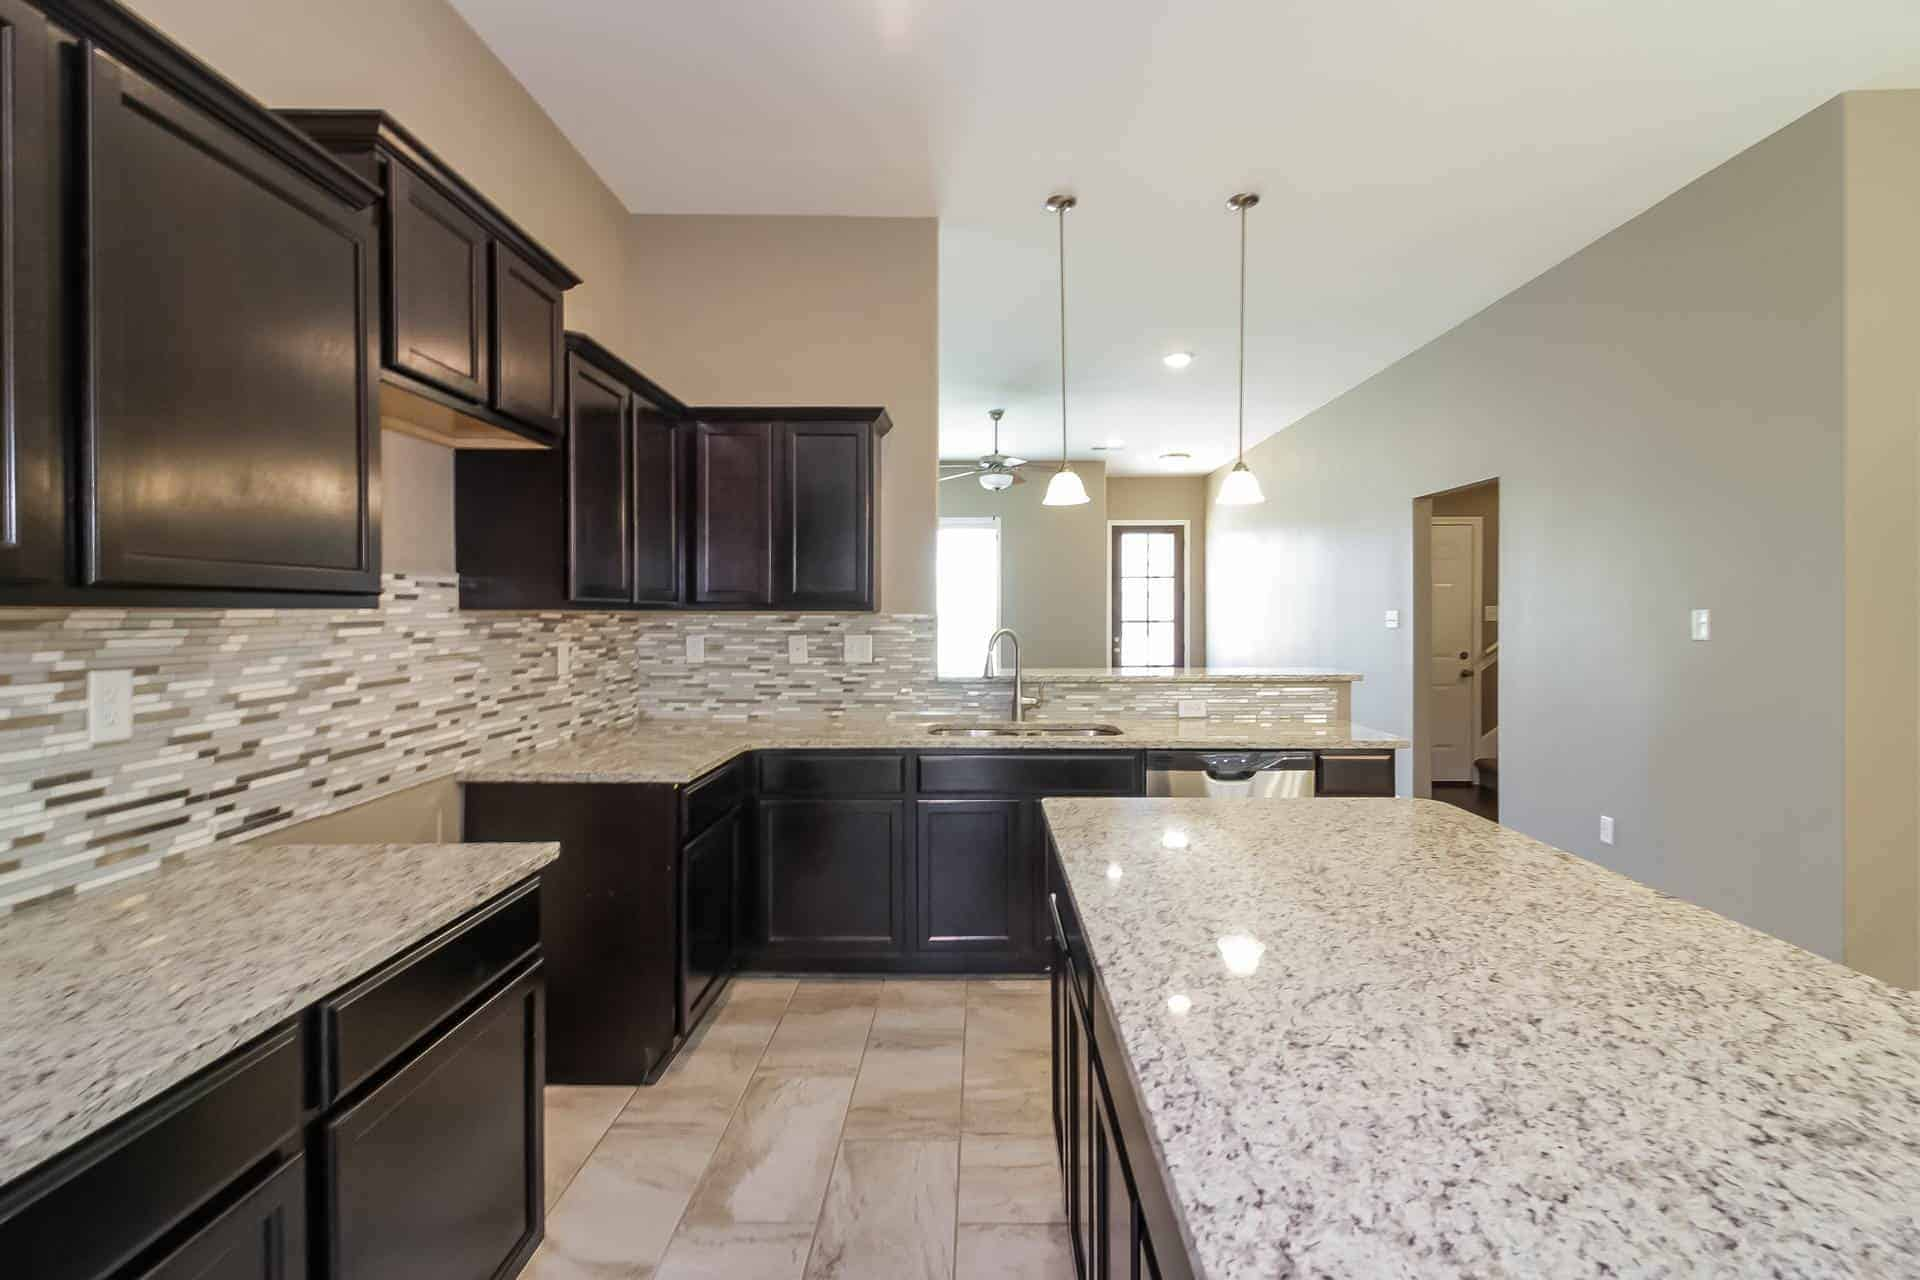 meridian-property-management-class-a-homes-kitchen